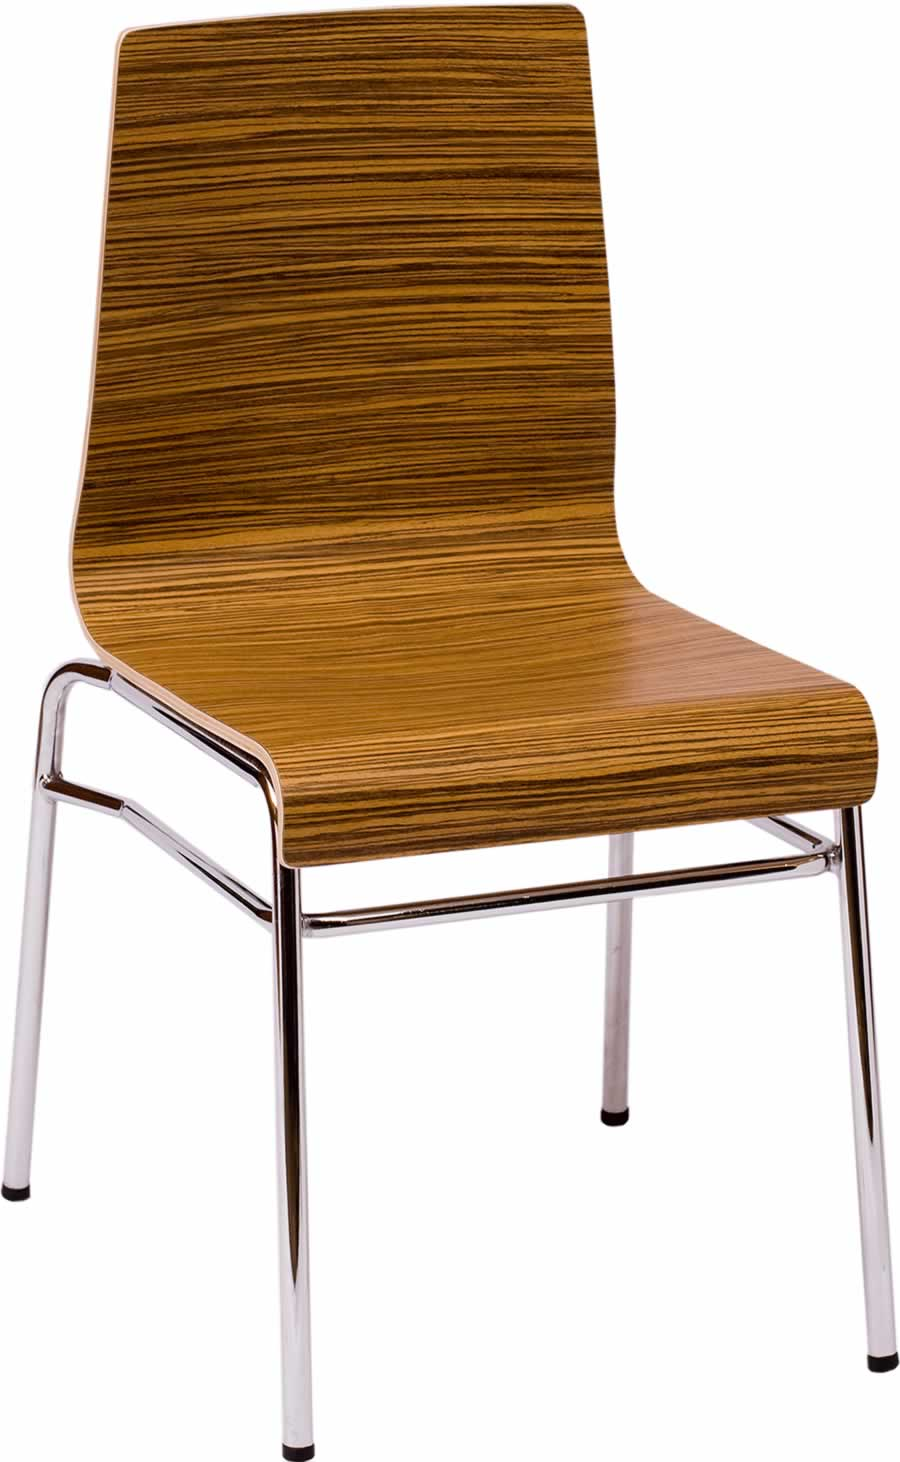 Abby Chair with Zebrano Laminate Finish